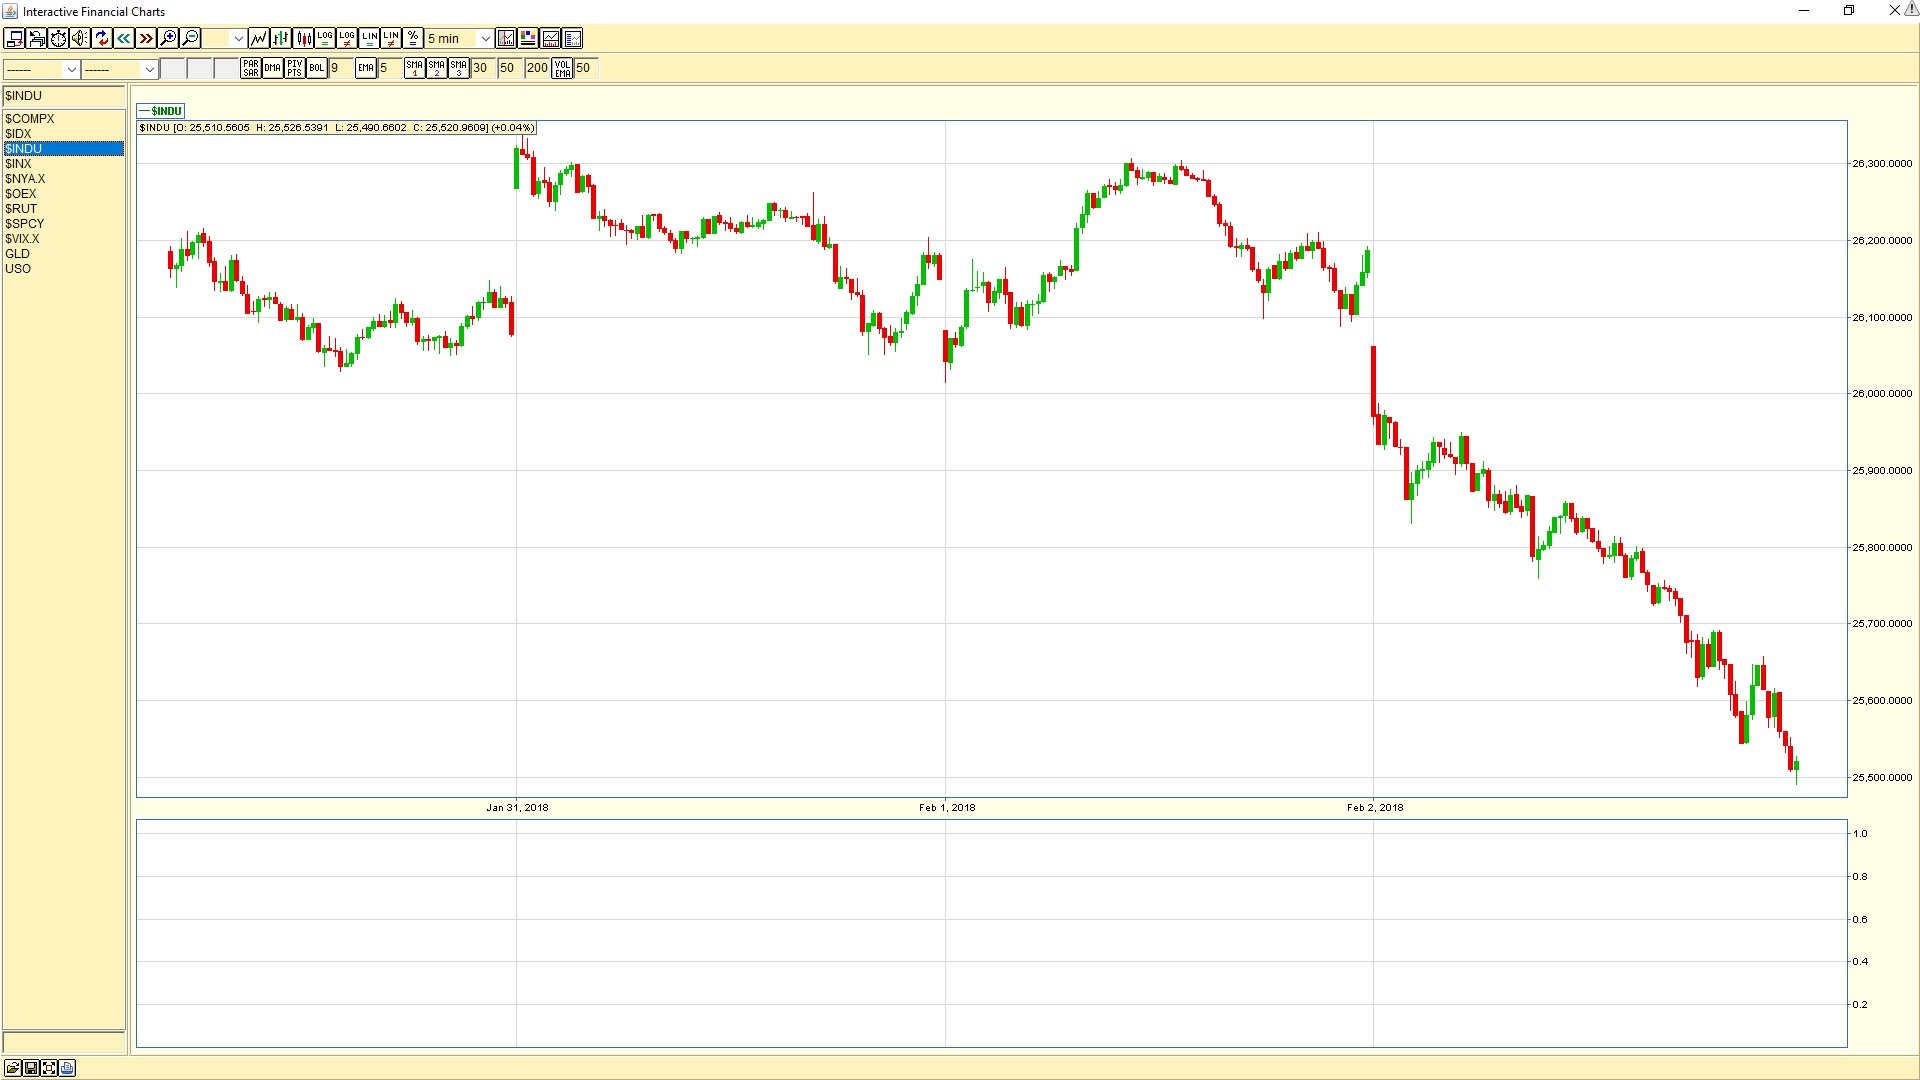 Dow Jones Industrial Average 5-minute chart